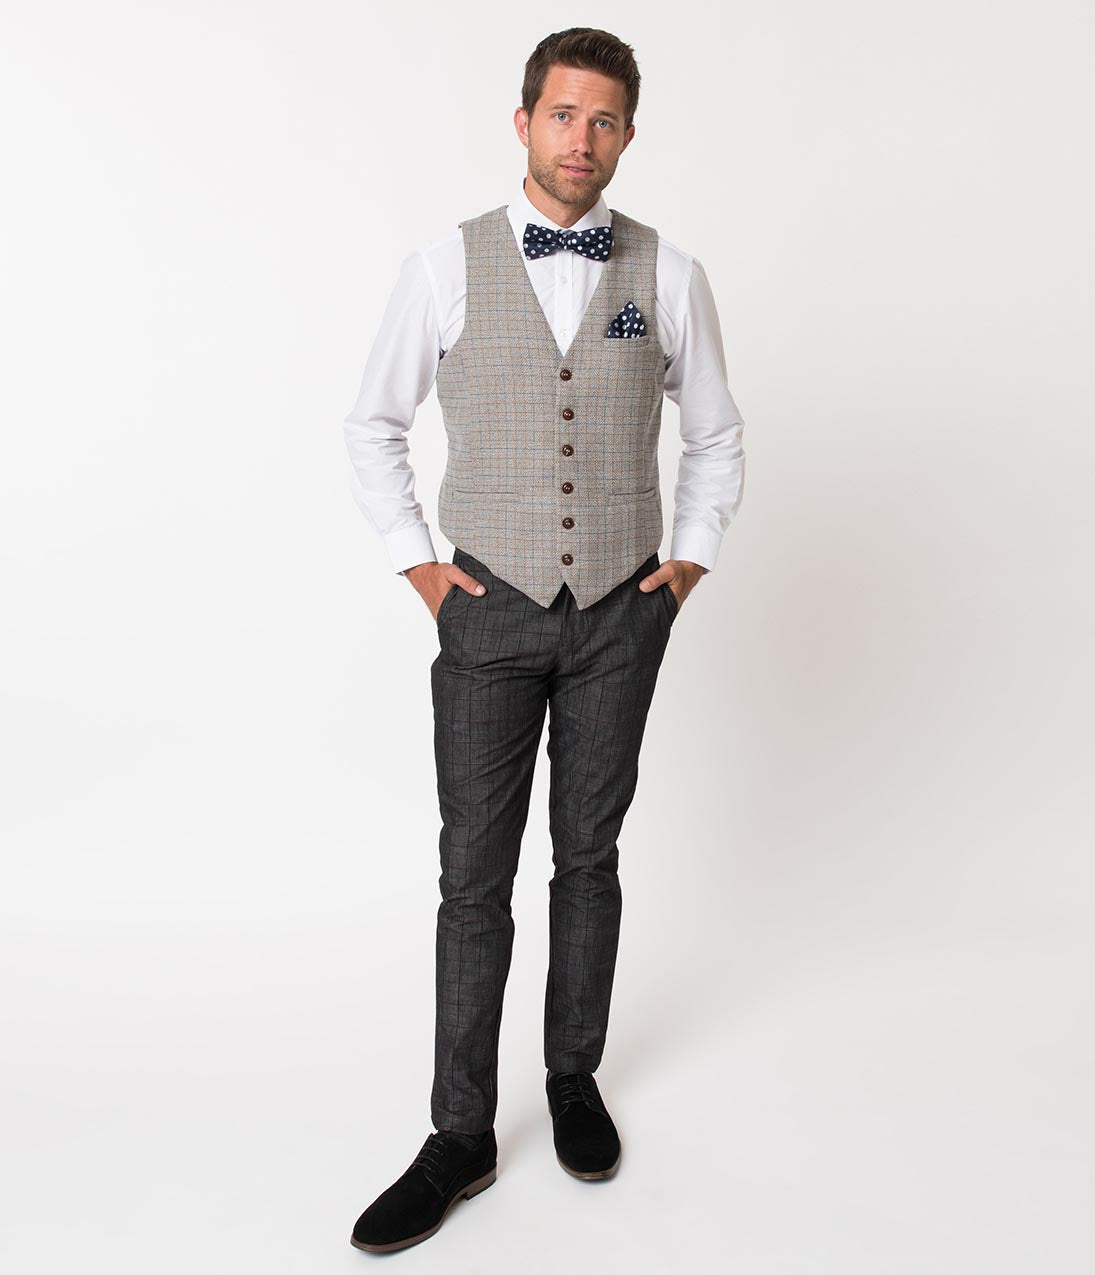 Men's Vintage Pants, Trousers, Jeans, Overalls Grey Window Pane Checkered Cotton Mens Pant $58.00 AT vintagedancer.com